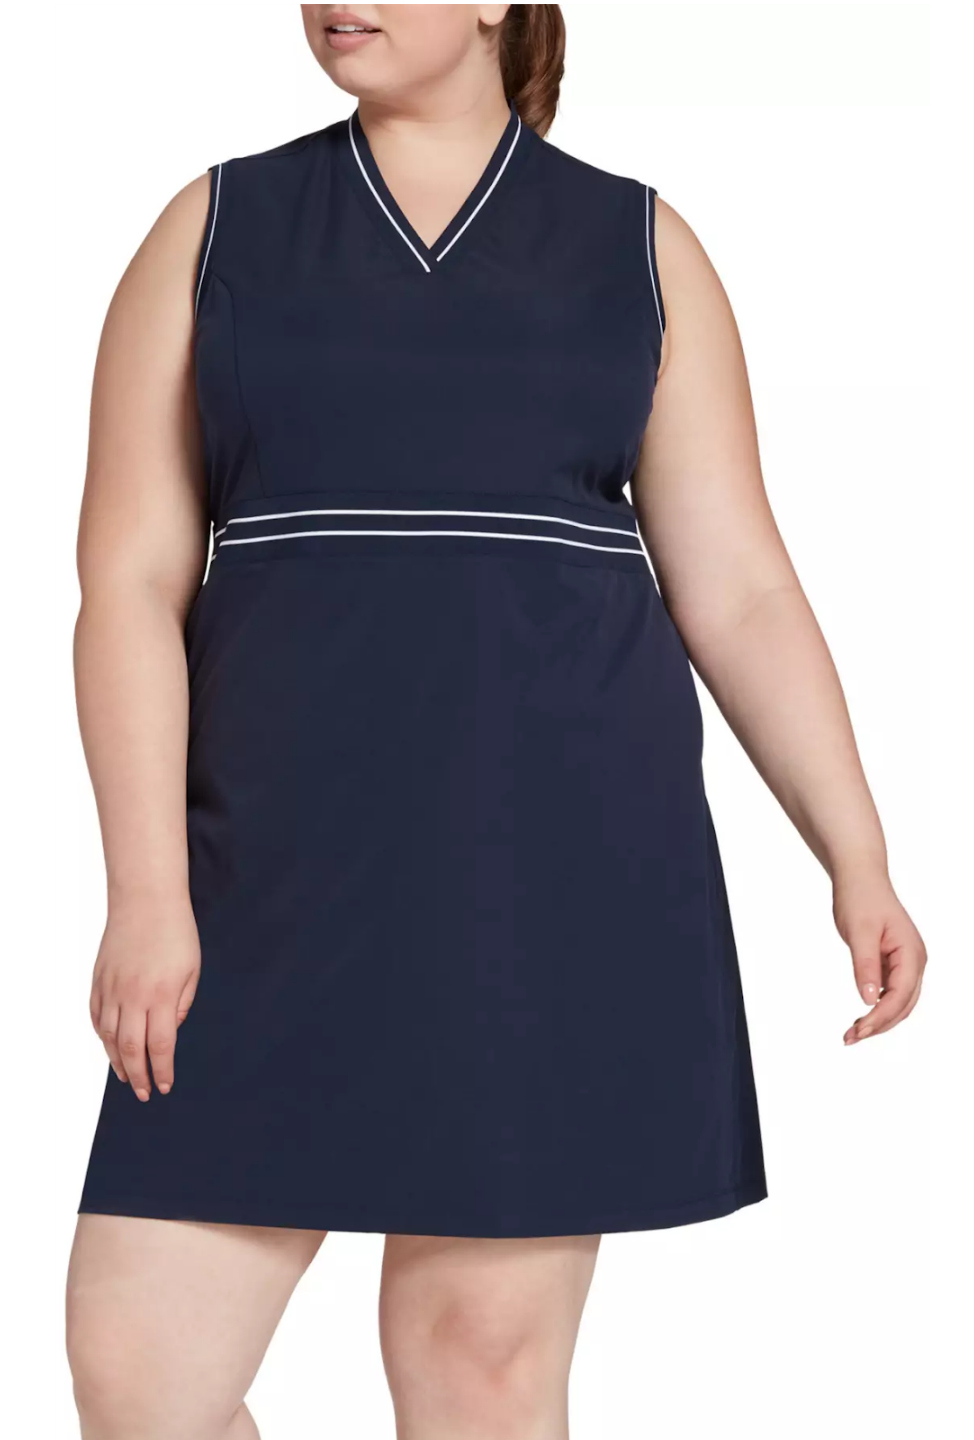 womens-golf-dresses